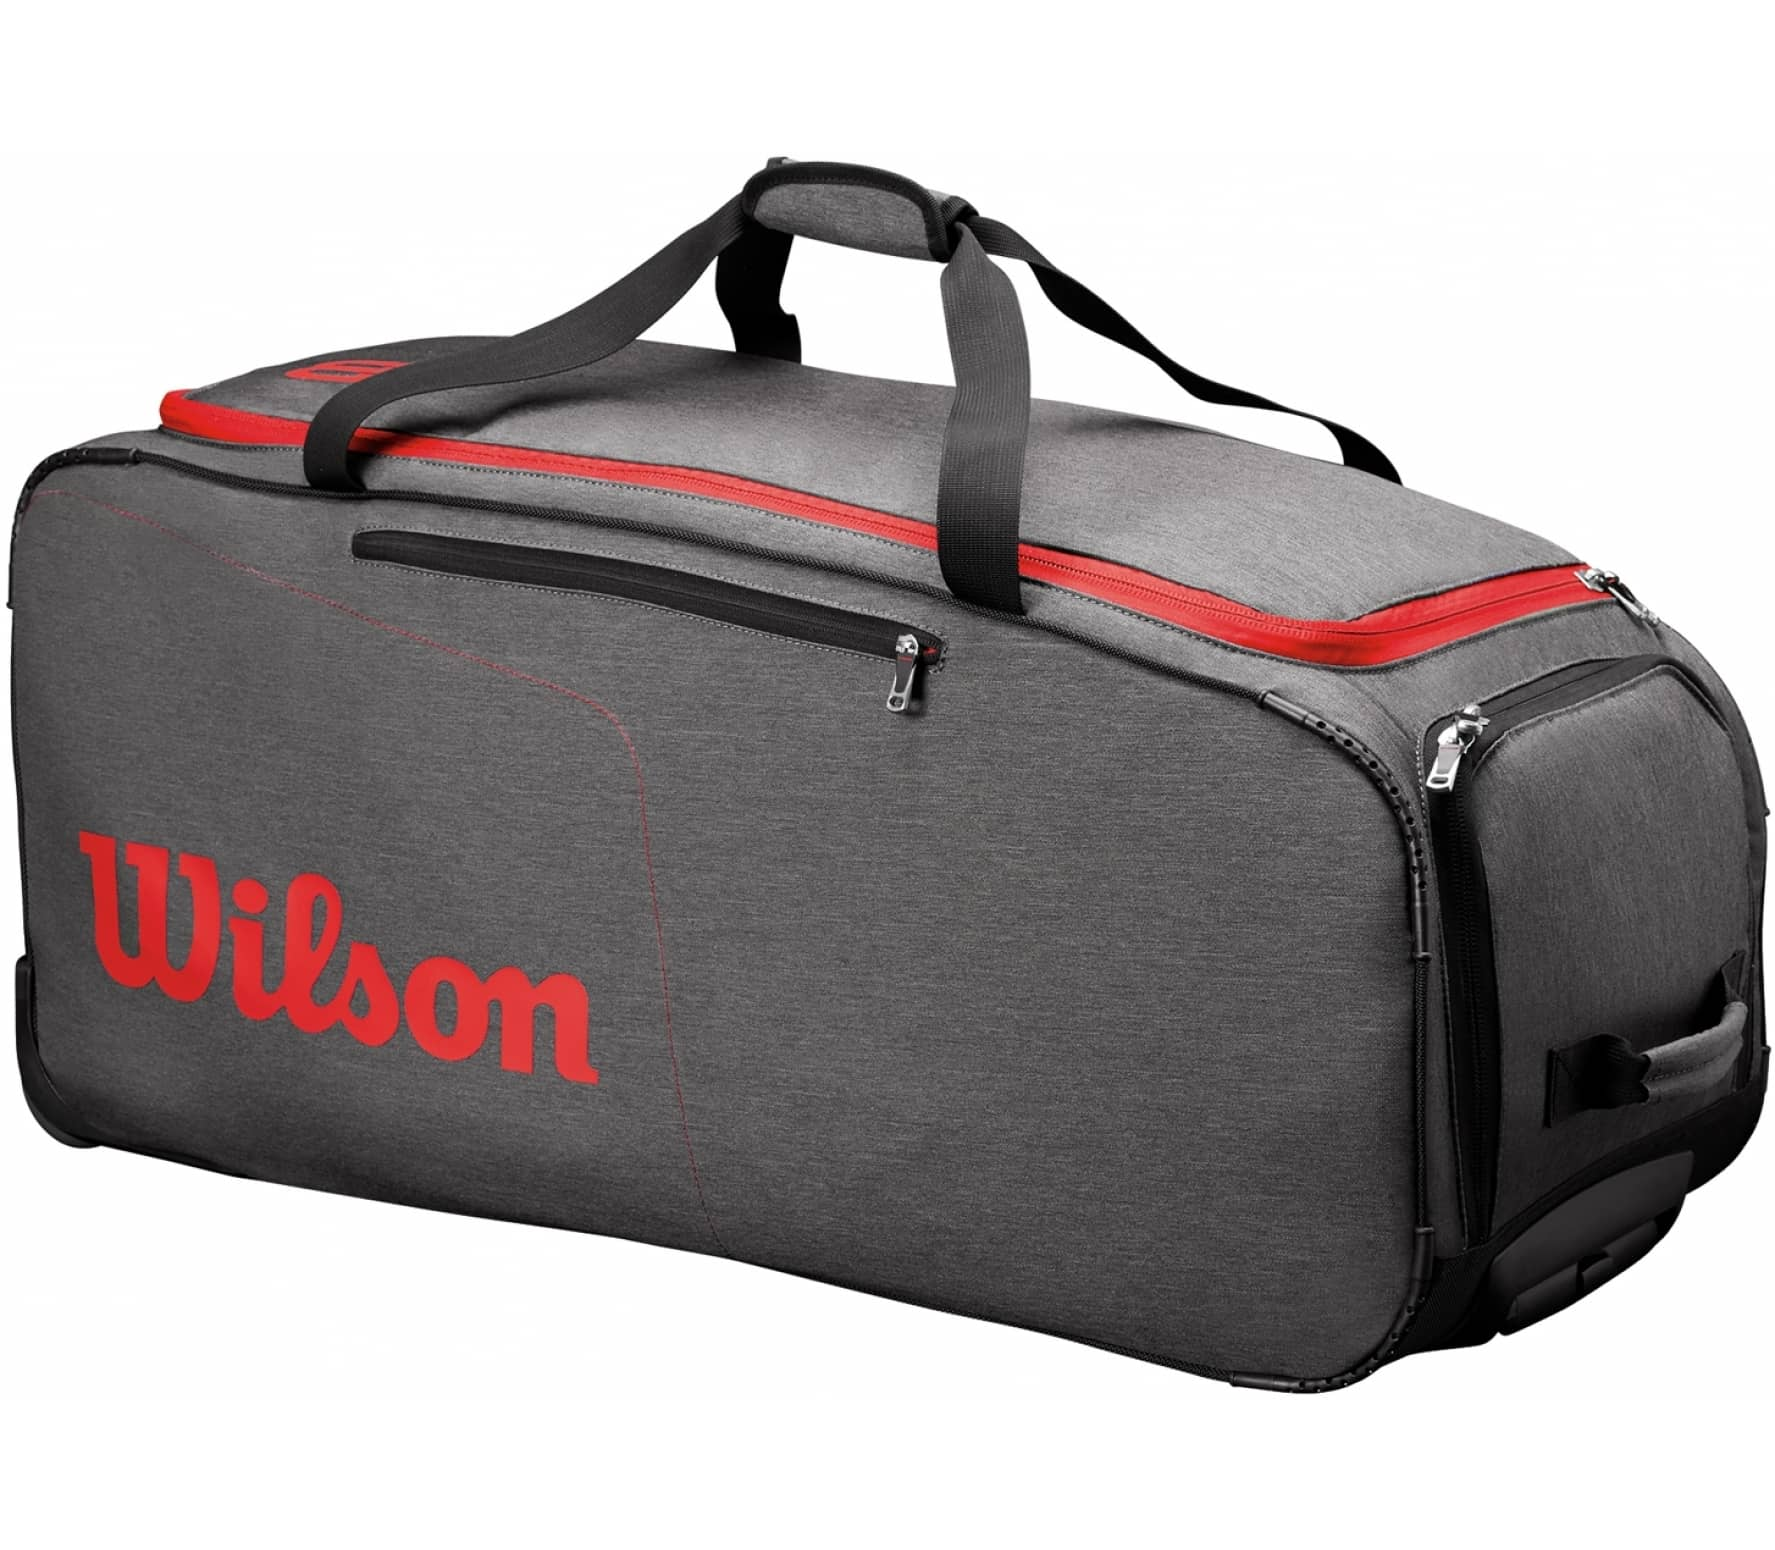 Wilson - Wheeled Travel duffel bag women's tennis bag (black/red)